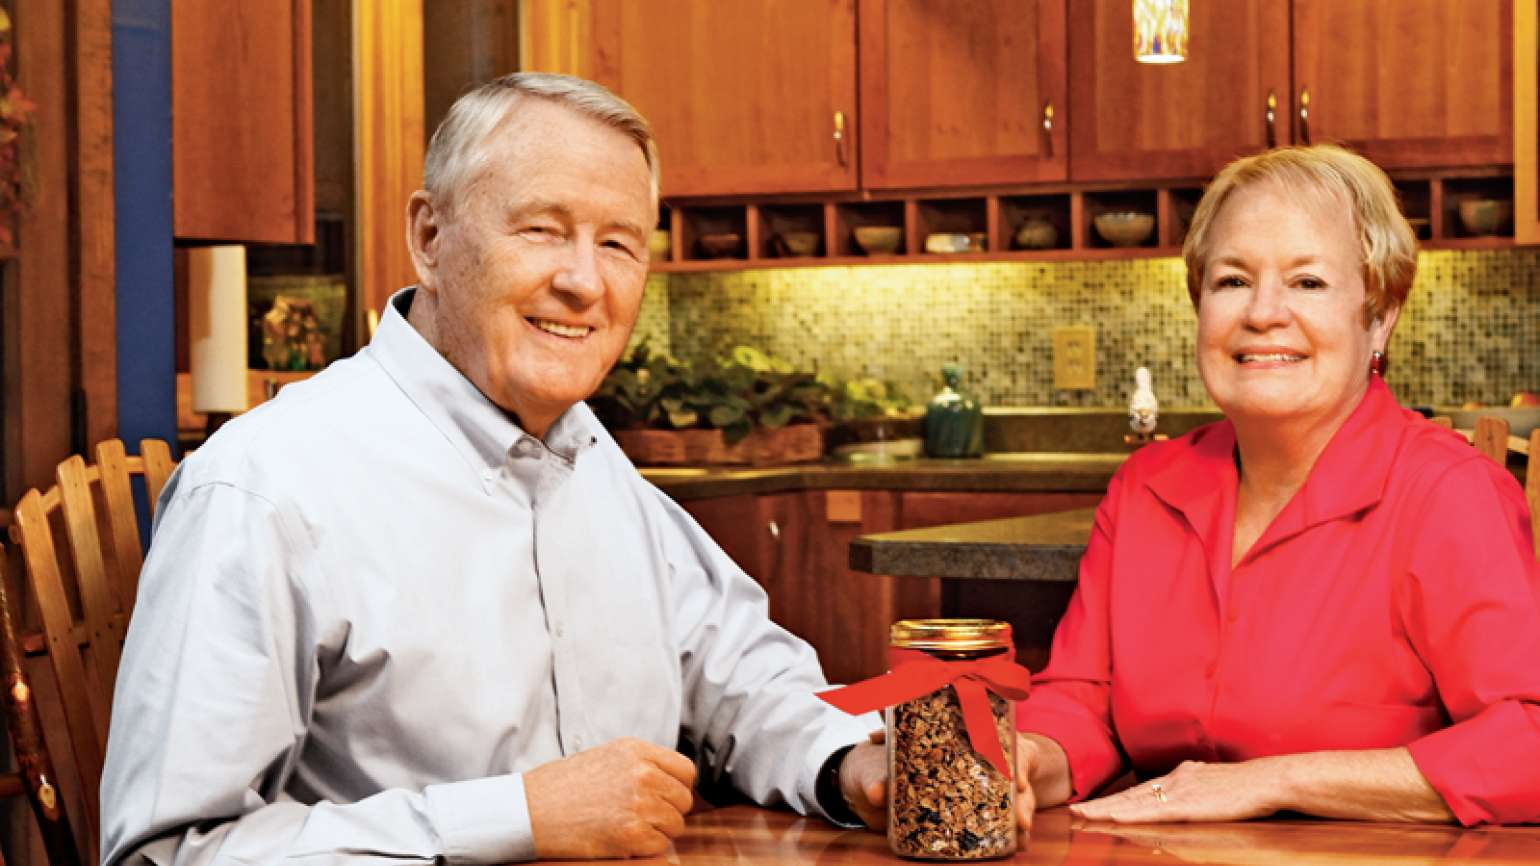 Leon Burns with his wife, Julie, and a jar of his special granola